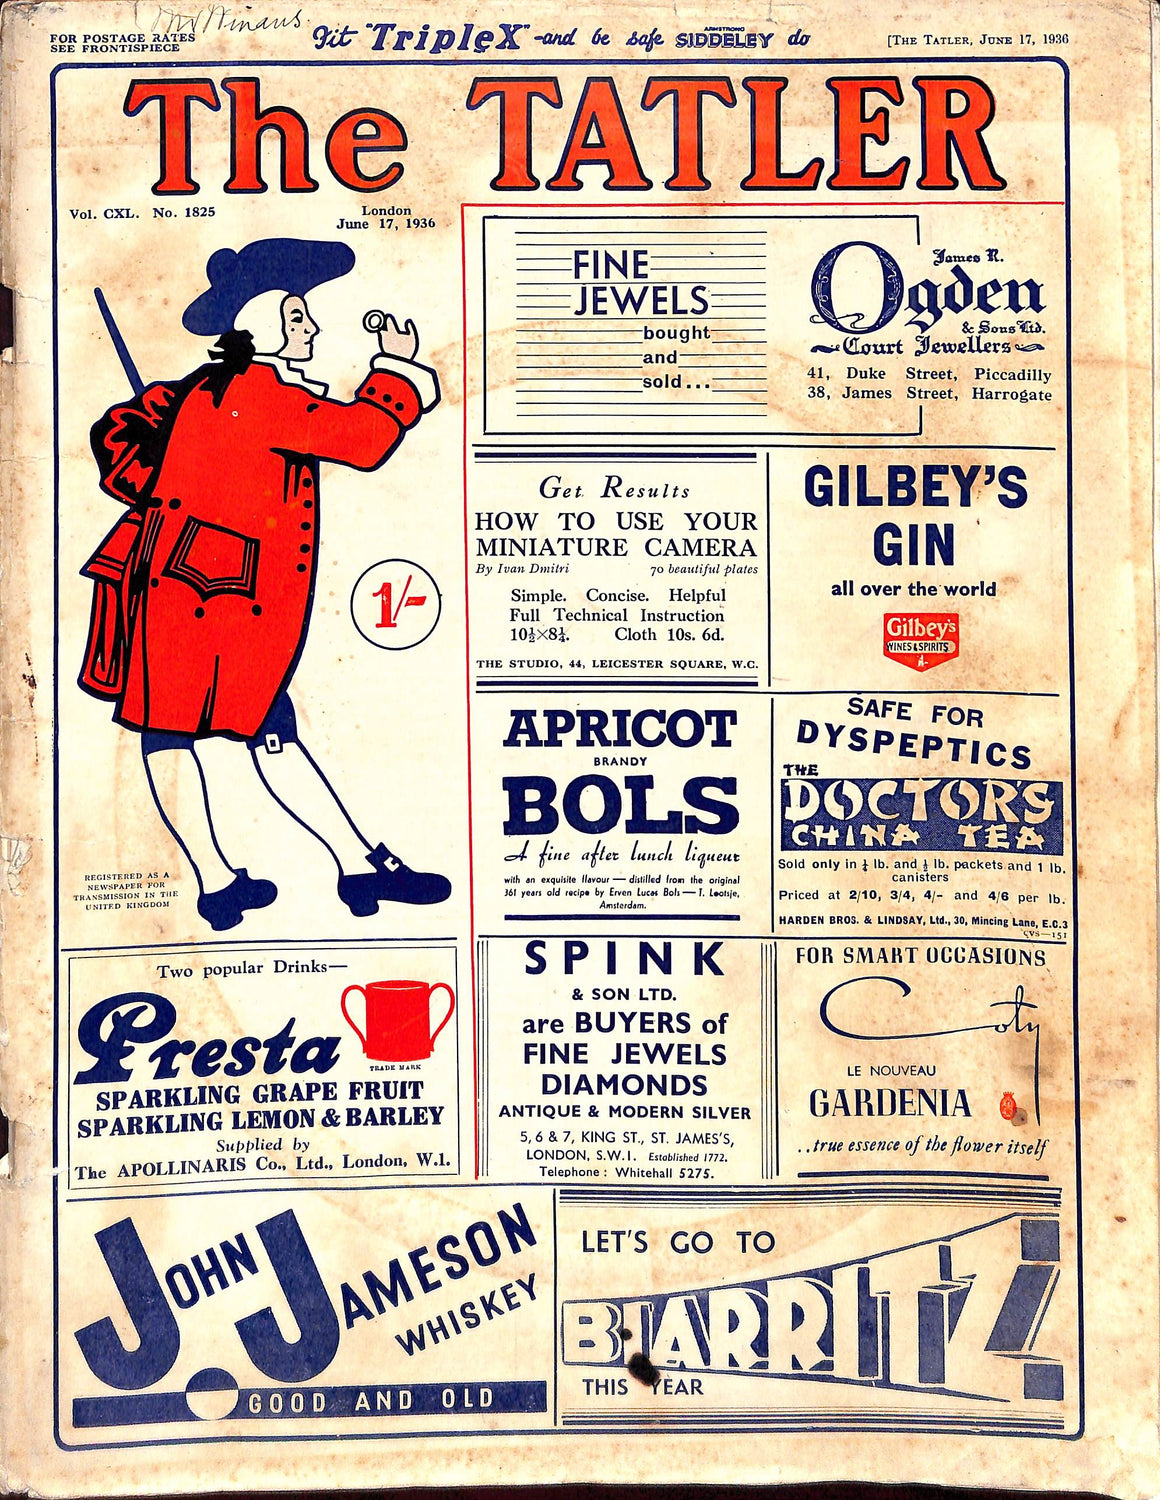 The Tatler: June 17, 1936 (Sold!)